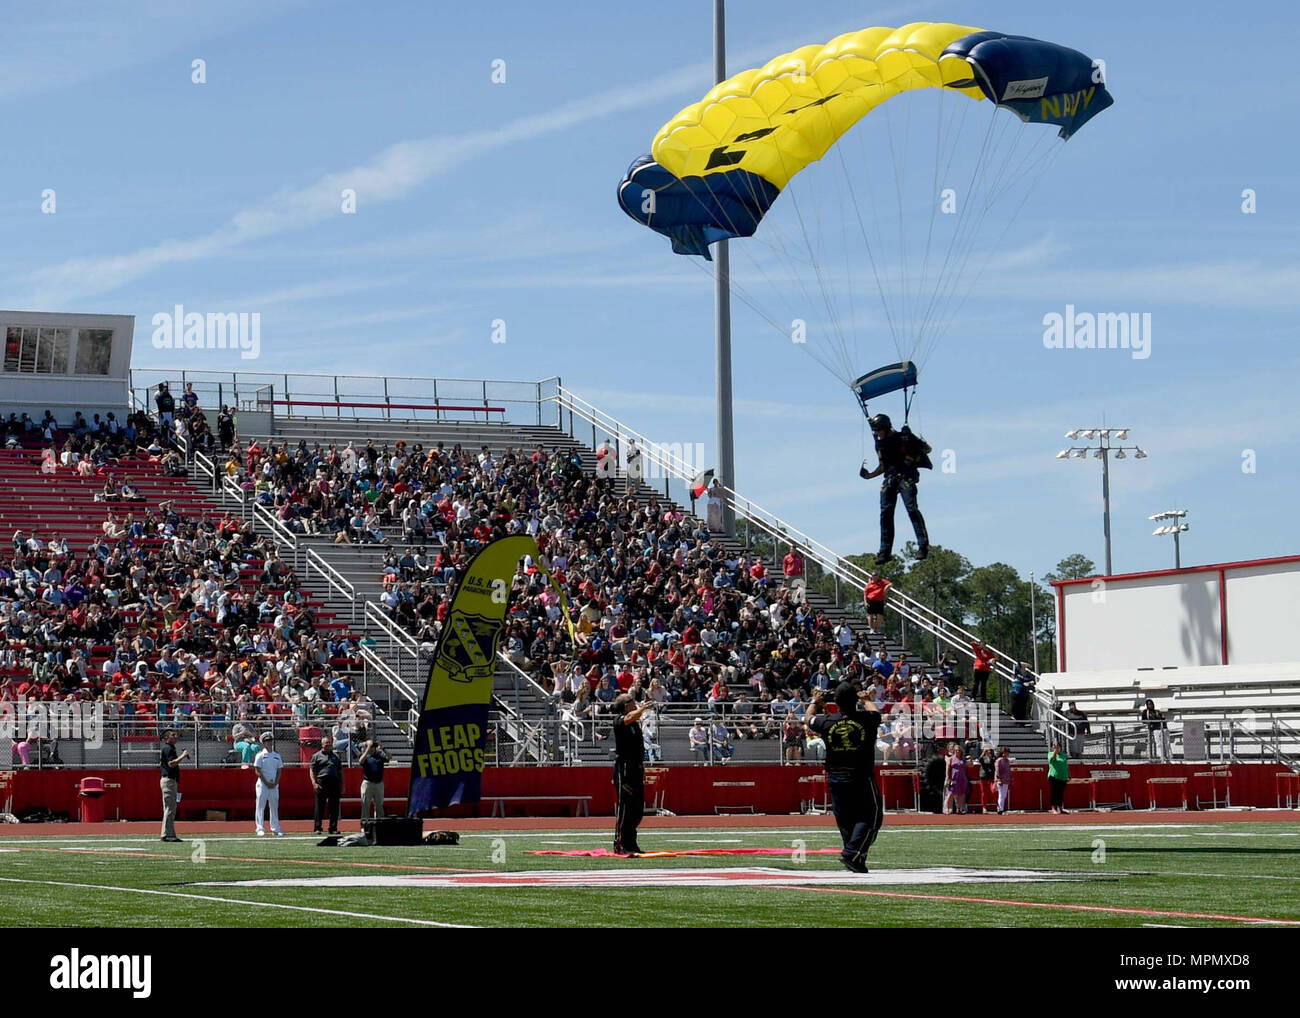 High School Stadium High Resolution Stock Photography And Images